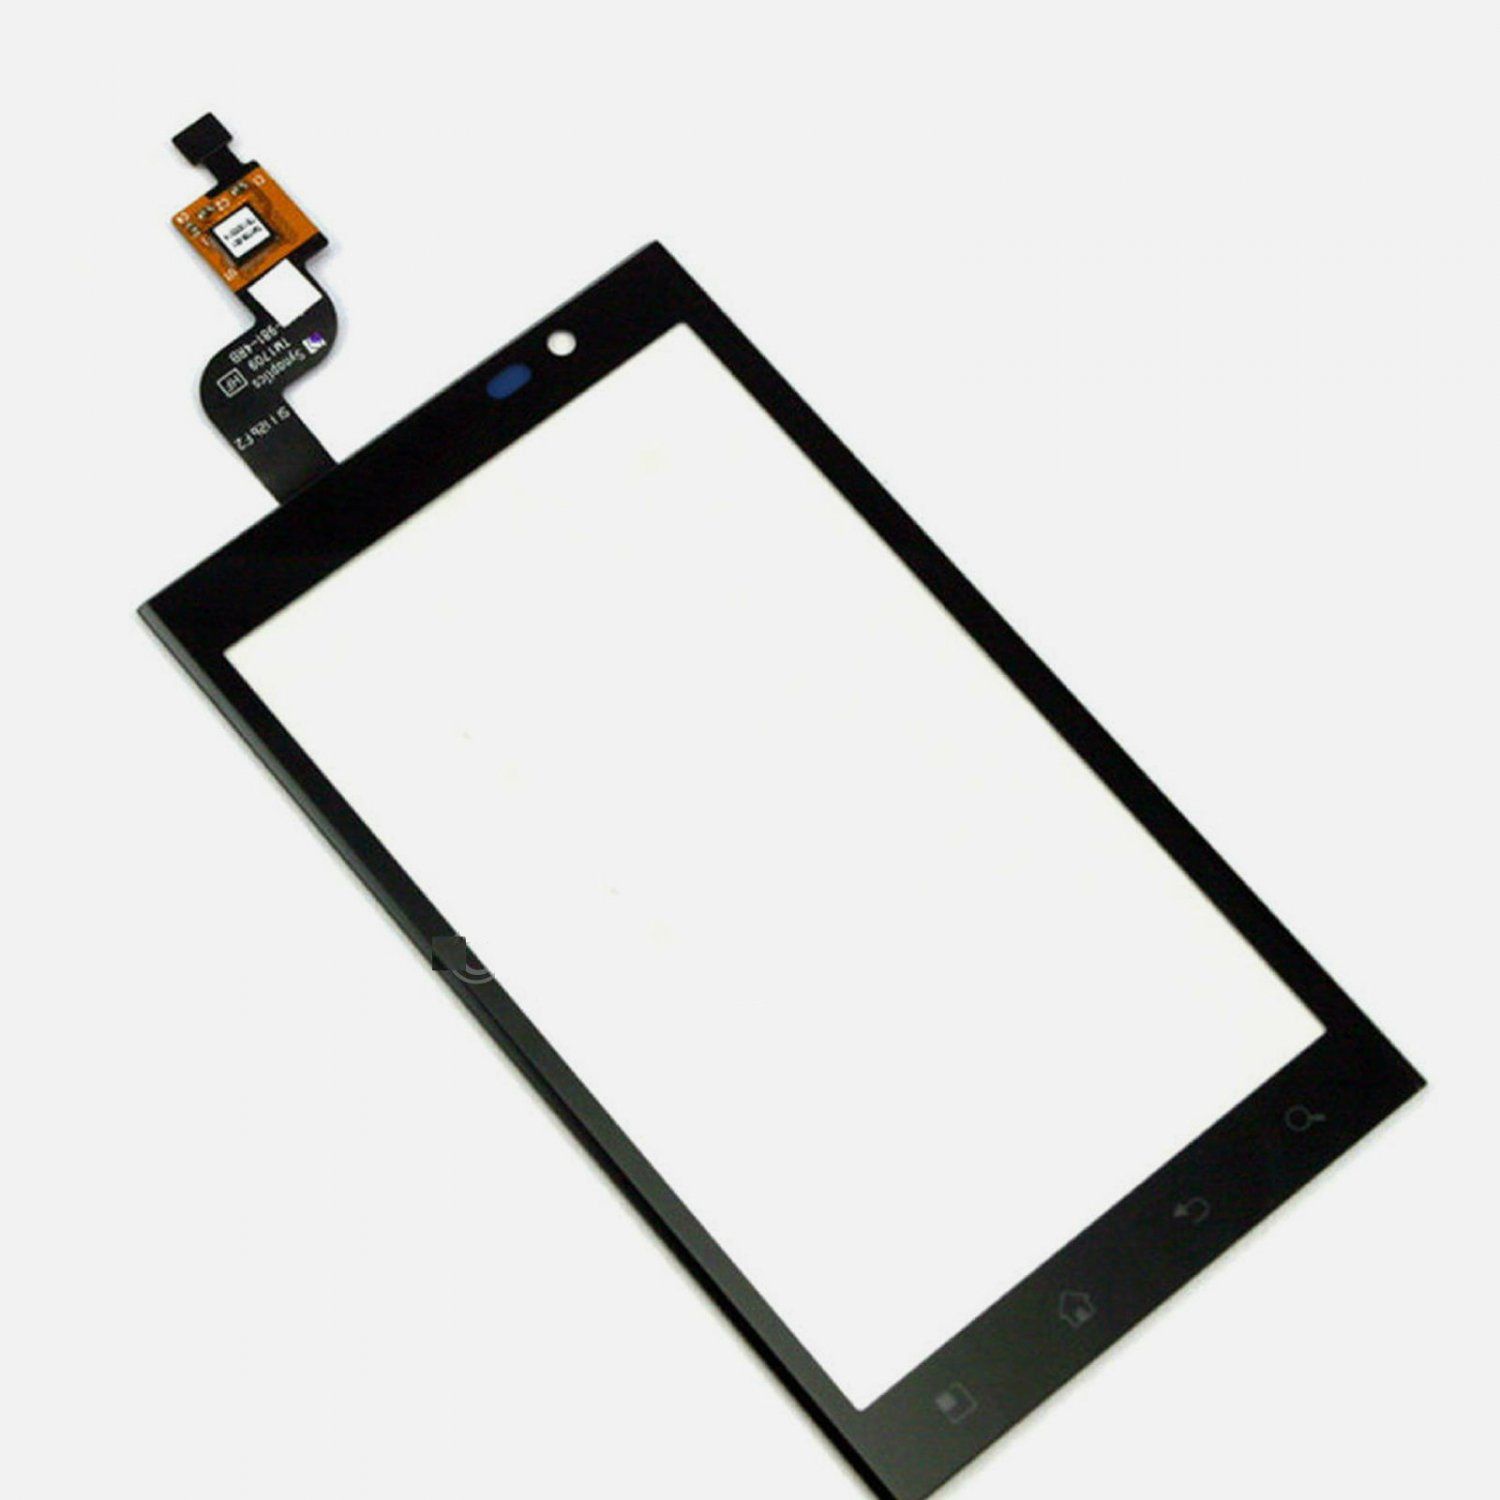 New LG Thrill 4G P925 Optimus 3D P920 Touch Digitizer Screen Panel Lens OEM Parts